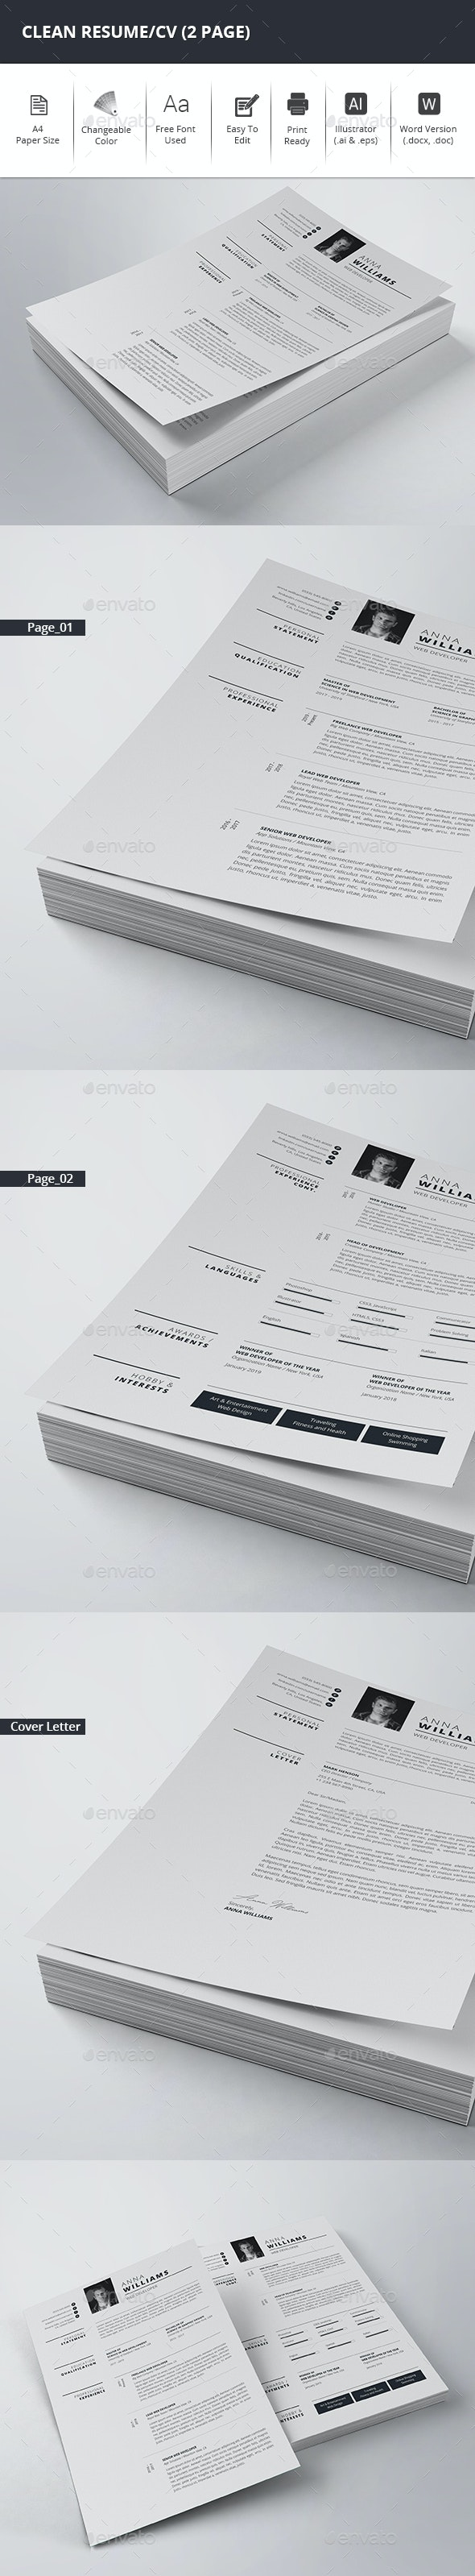 Clean Resume/CV (2 Page) - Resumes Stationery